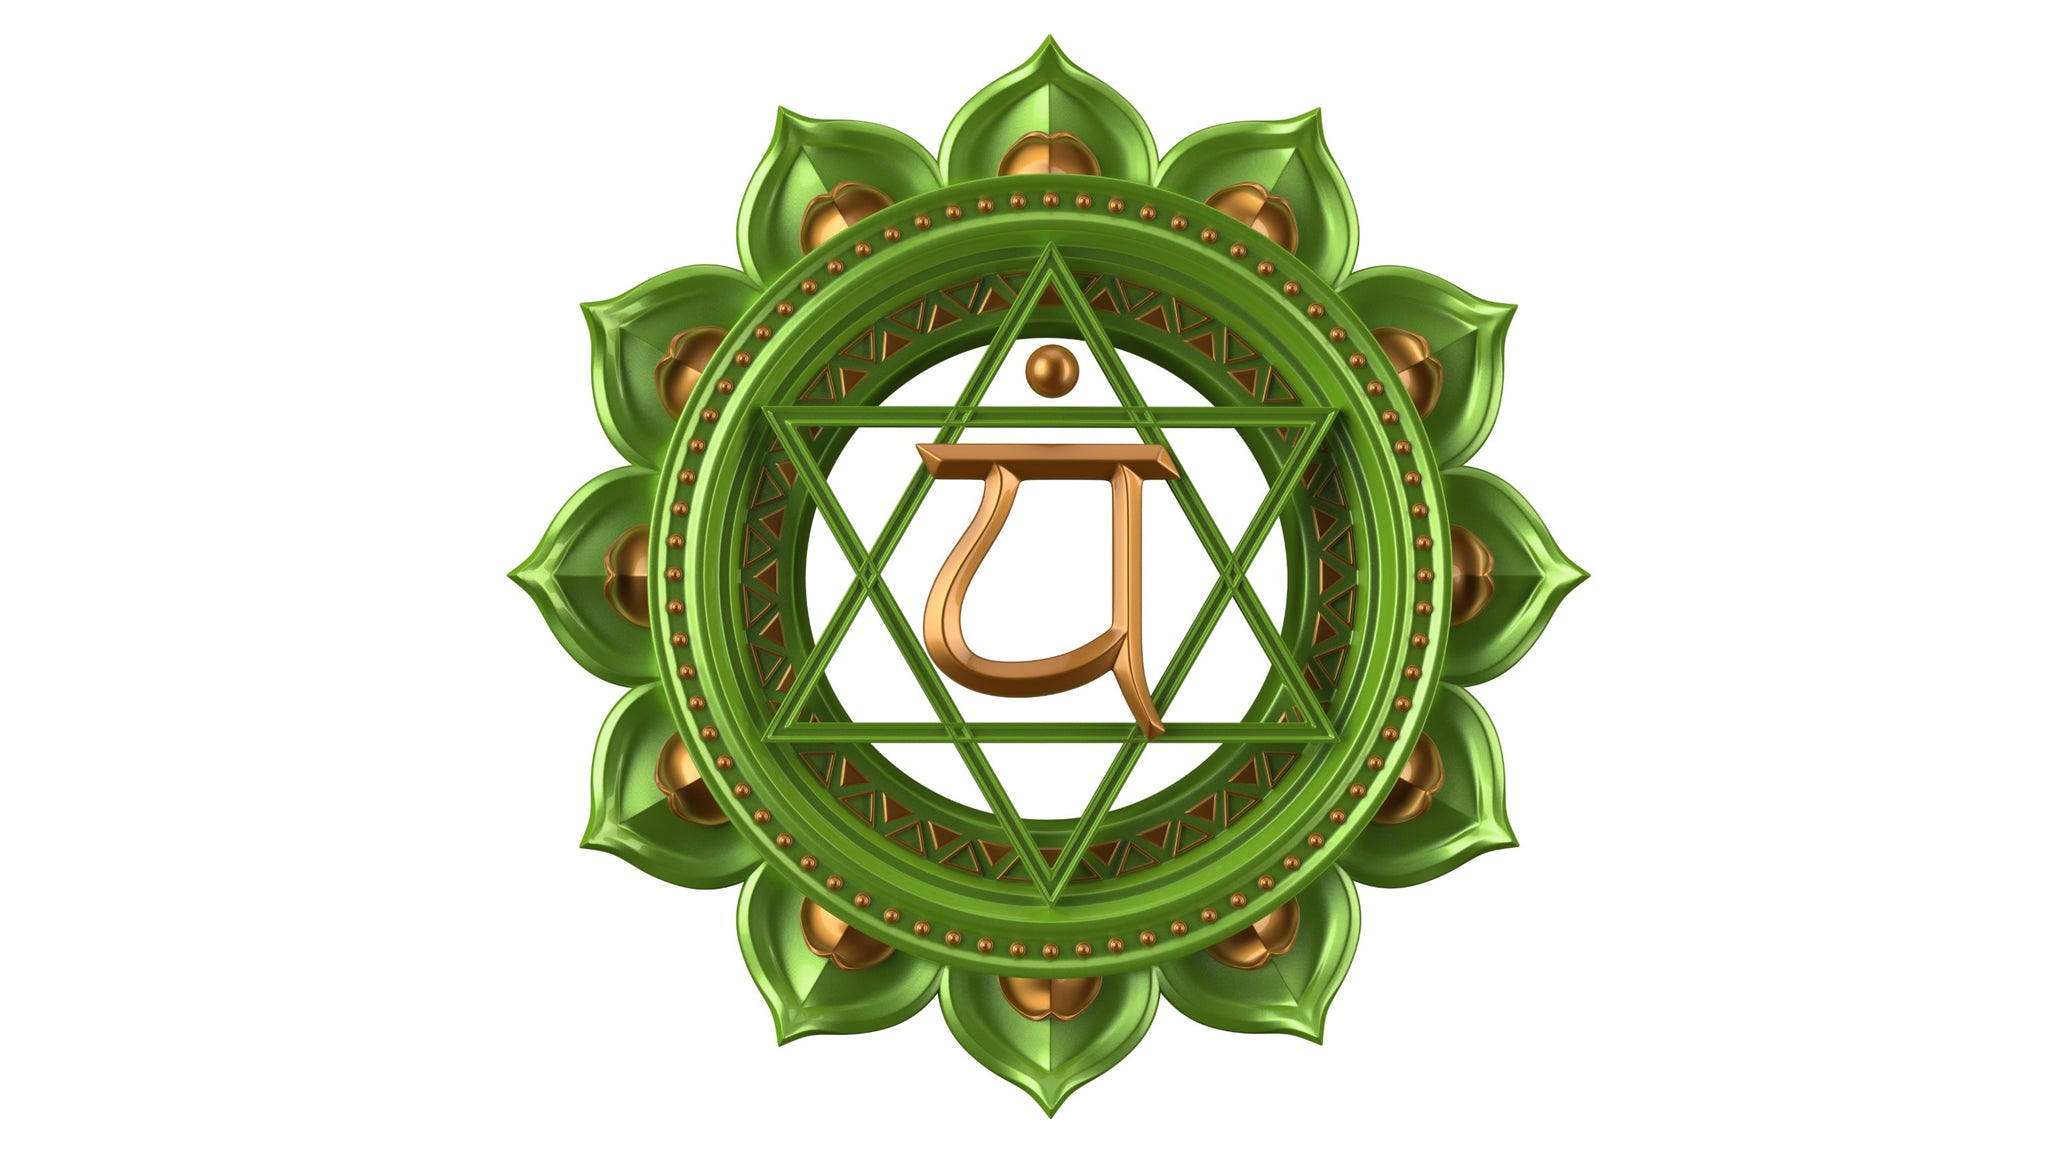 Image of the Anahata Chakra symbol